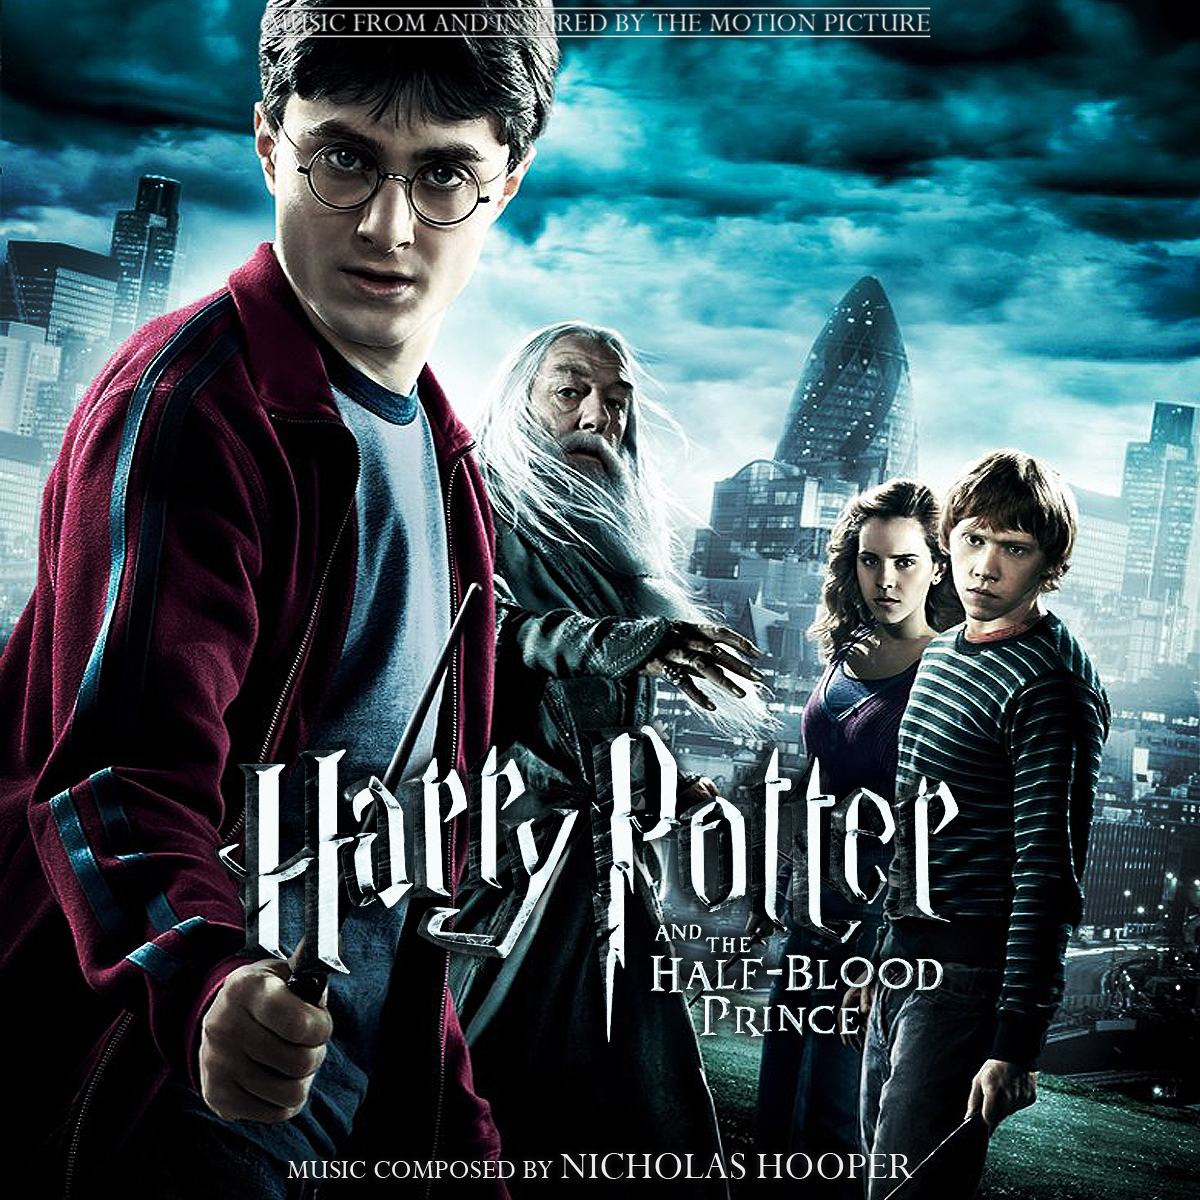 Harry Potter and the Half-Blood Prince Album Artwork